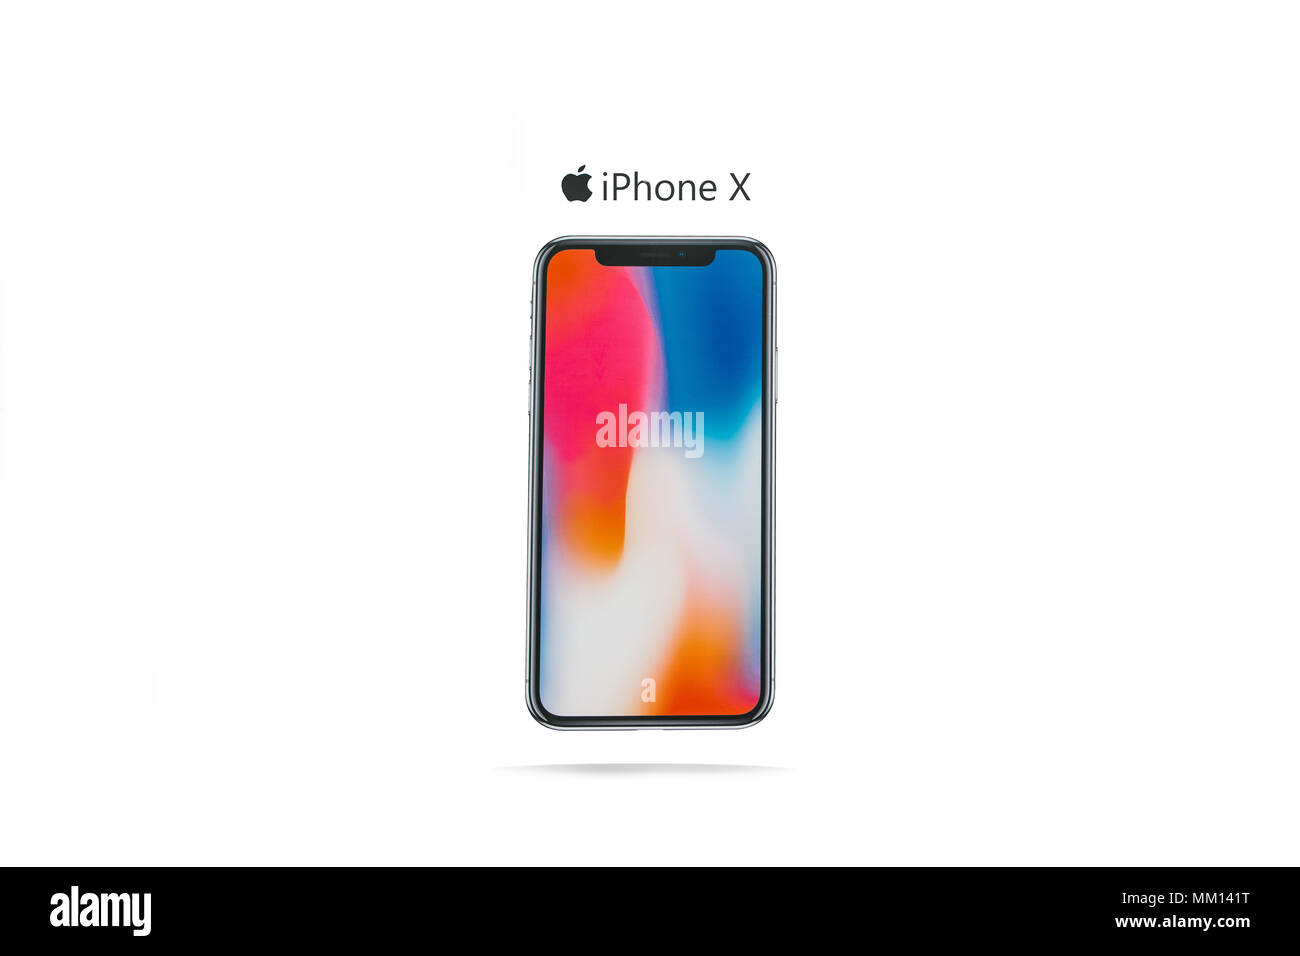 Australia, Christmas Island, May 9, 2018: The new frameless phone firm of Apple called the iPhone X editorial illustration on a white background with  - Stock Image